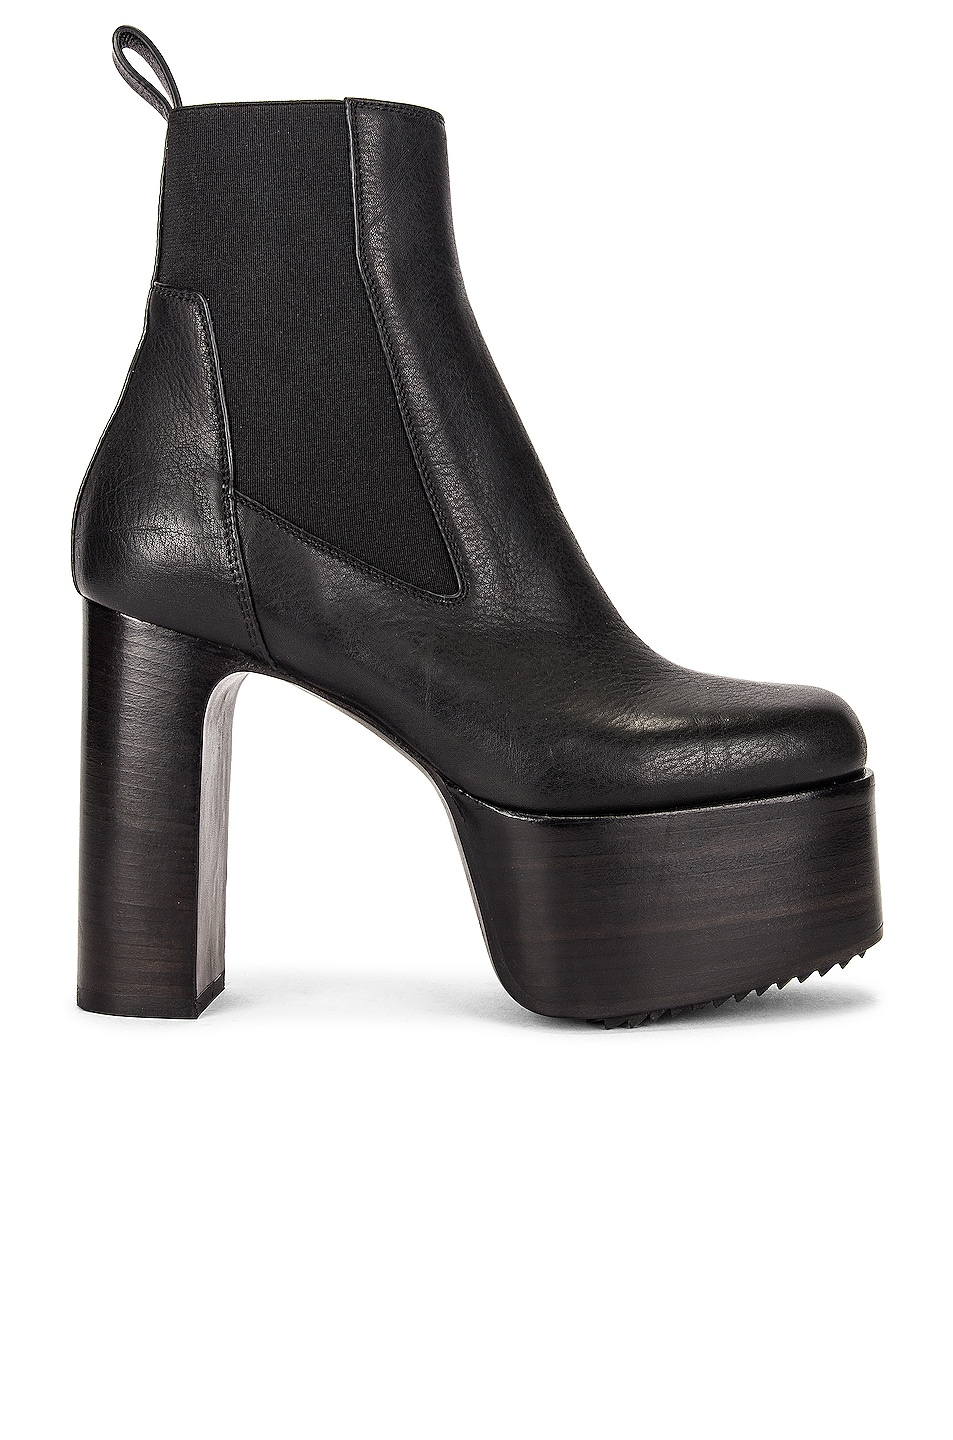 Image 1 of Rick Owens Kiss 65 Boot in Black